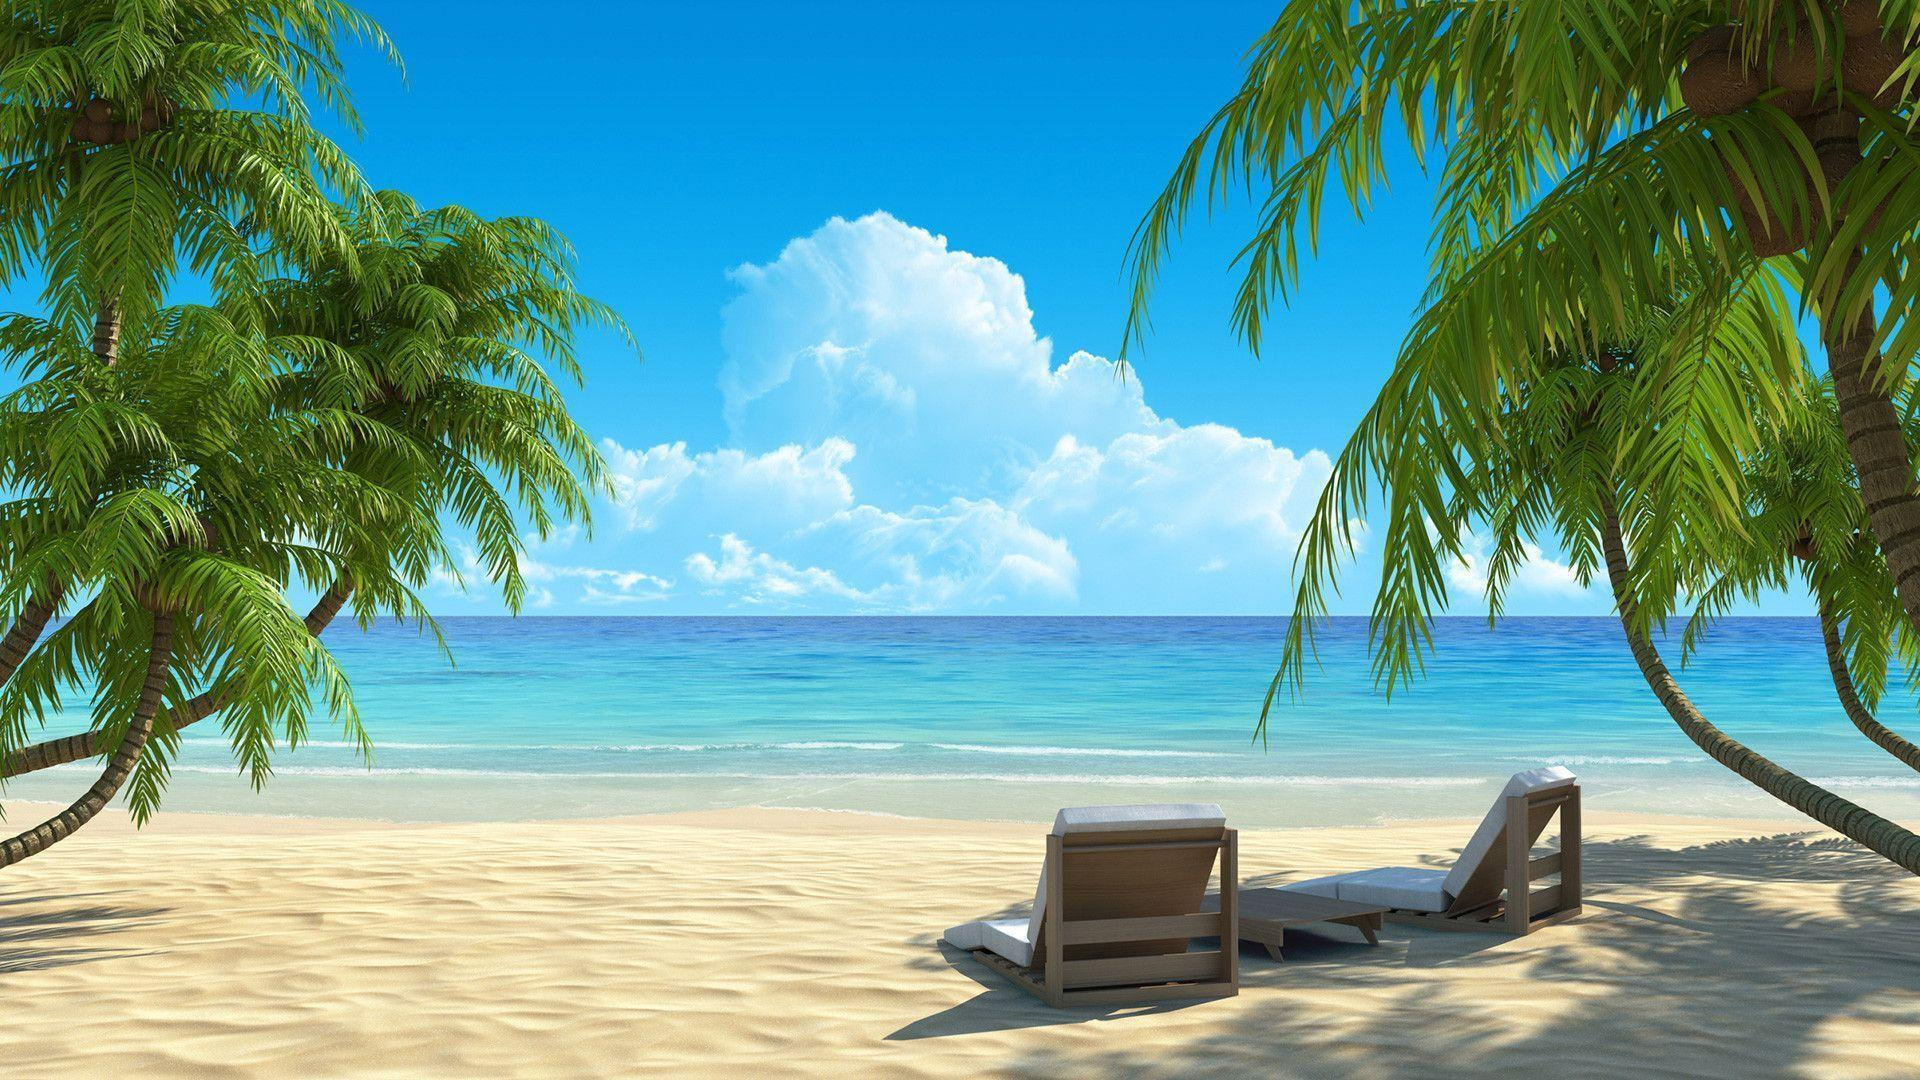 Lovely Wallpapers For U003e Summer Beach Paradise Wallpaper